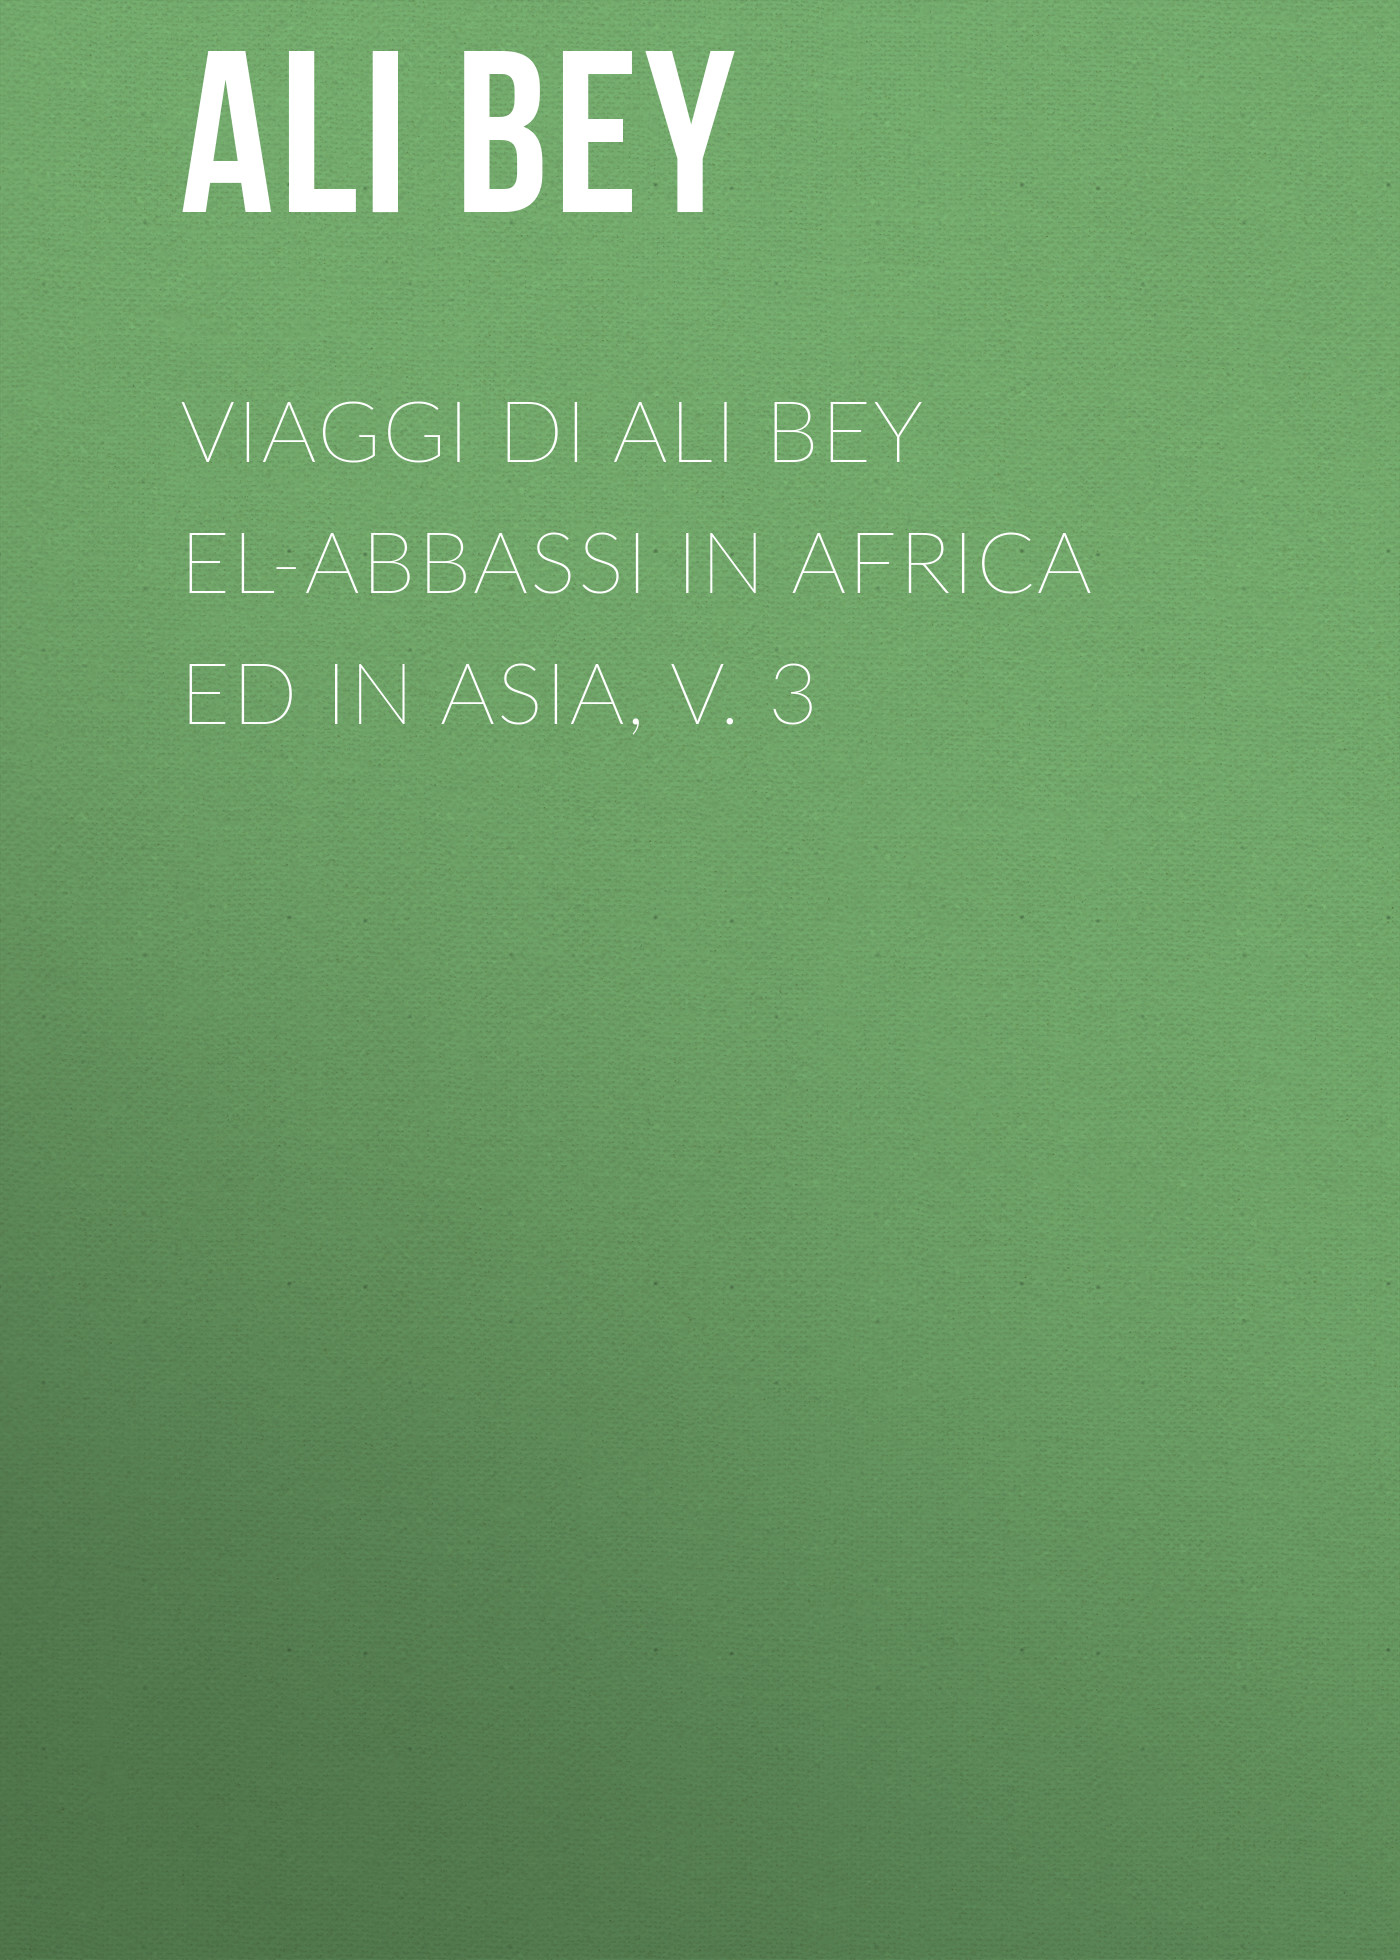 Ali Bey Viaggi di Ali Bey el-Abbassi in Africa ed in Asia, v. 3 sustaining rice production in tropical africa